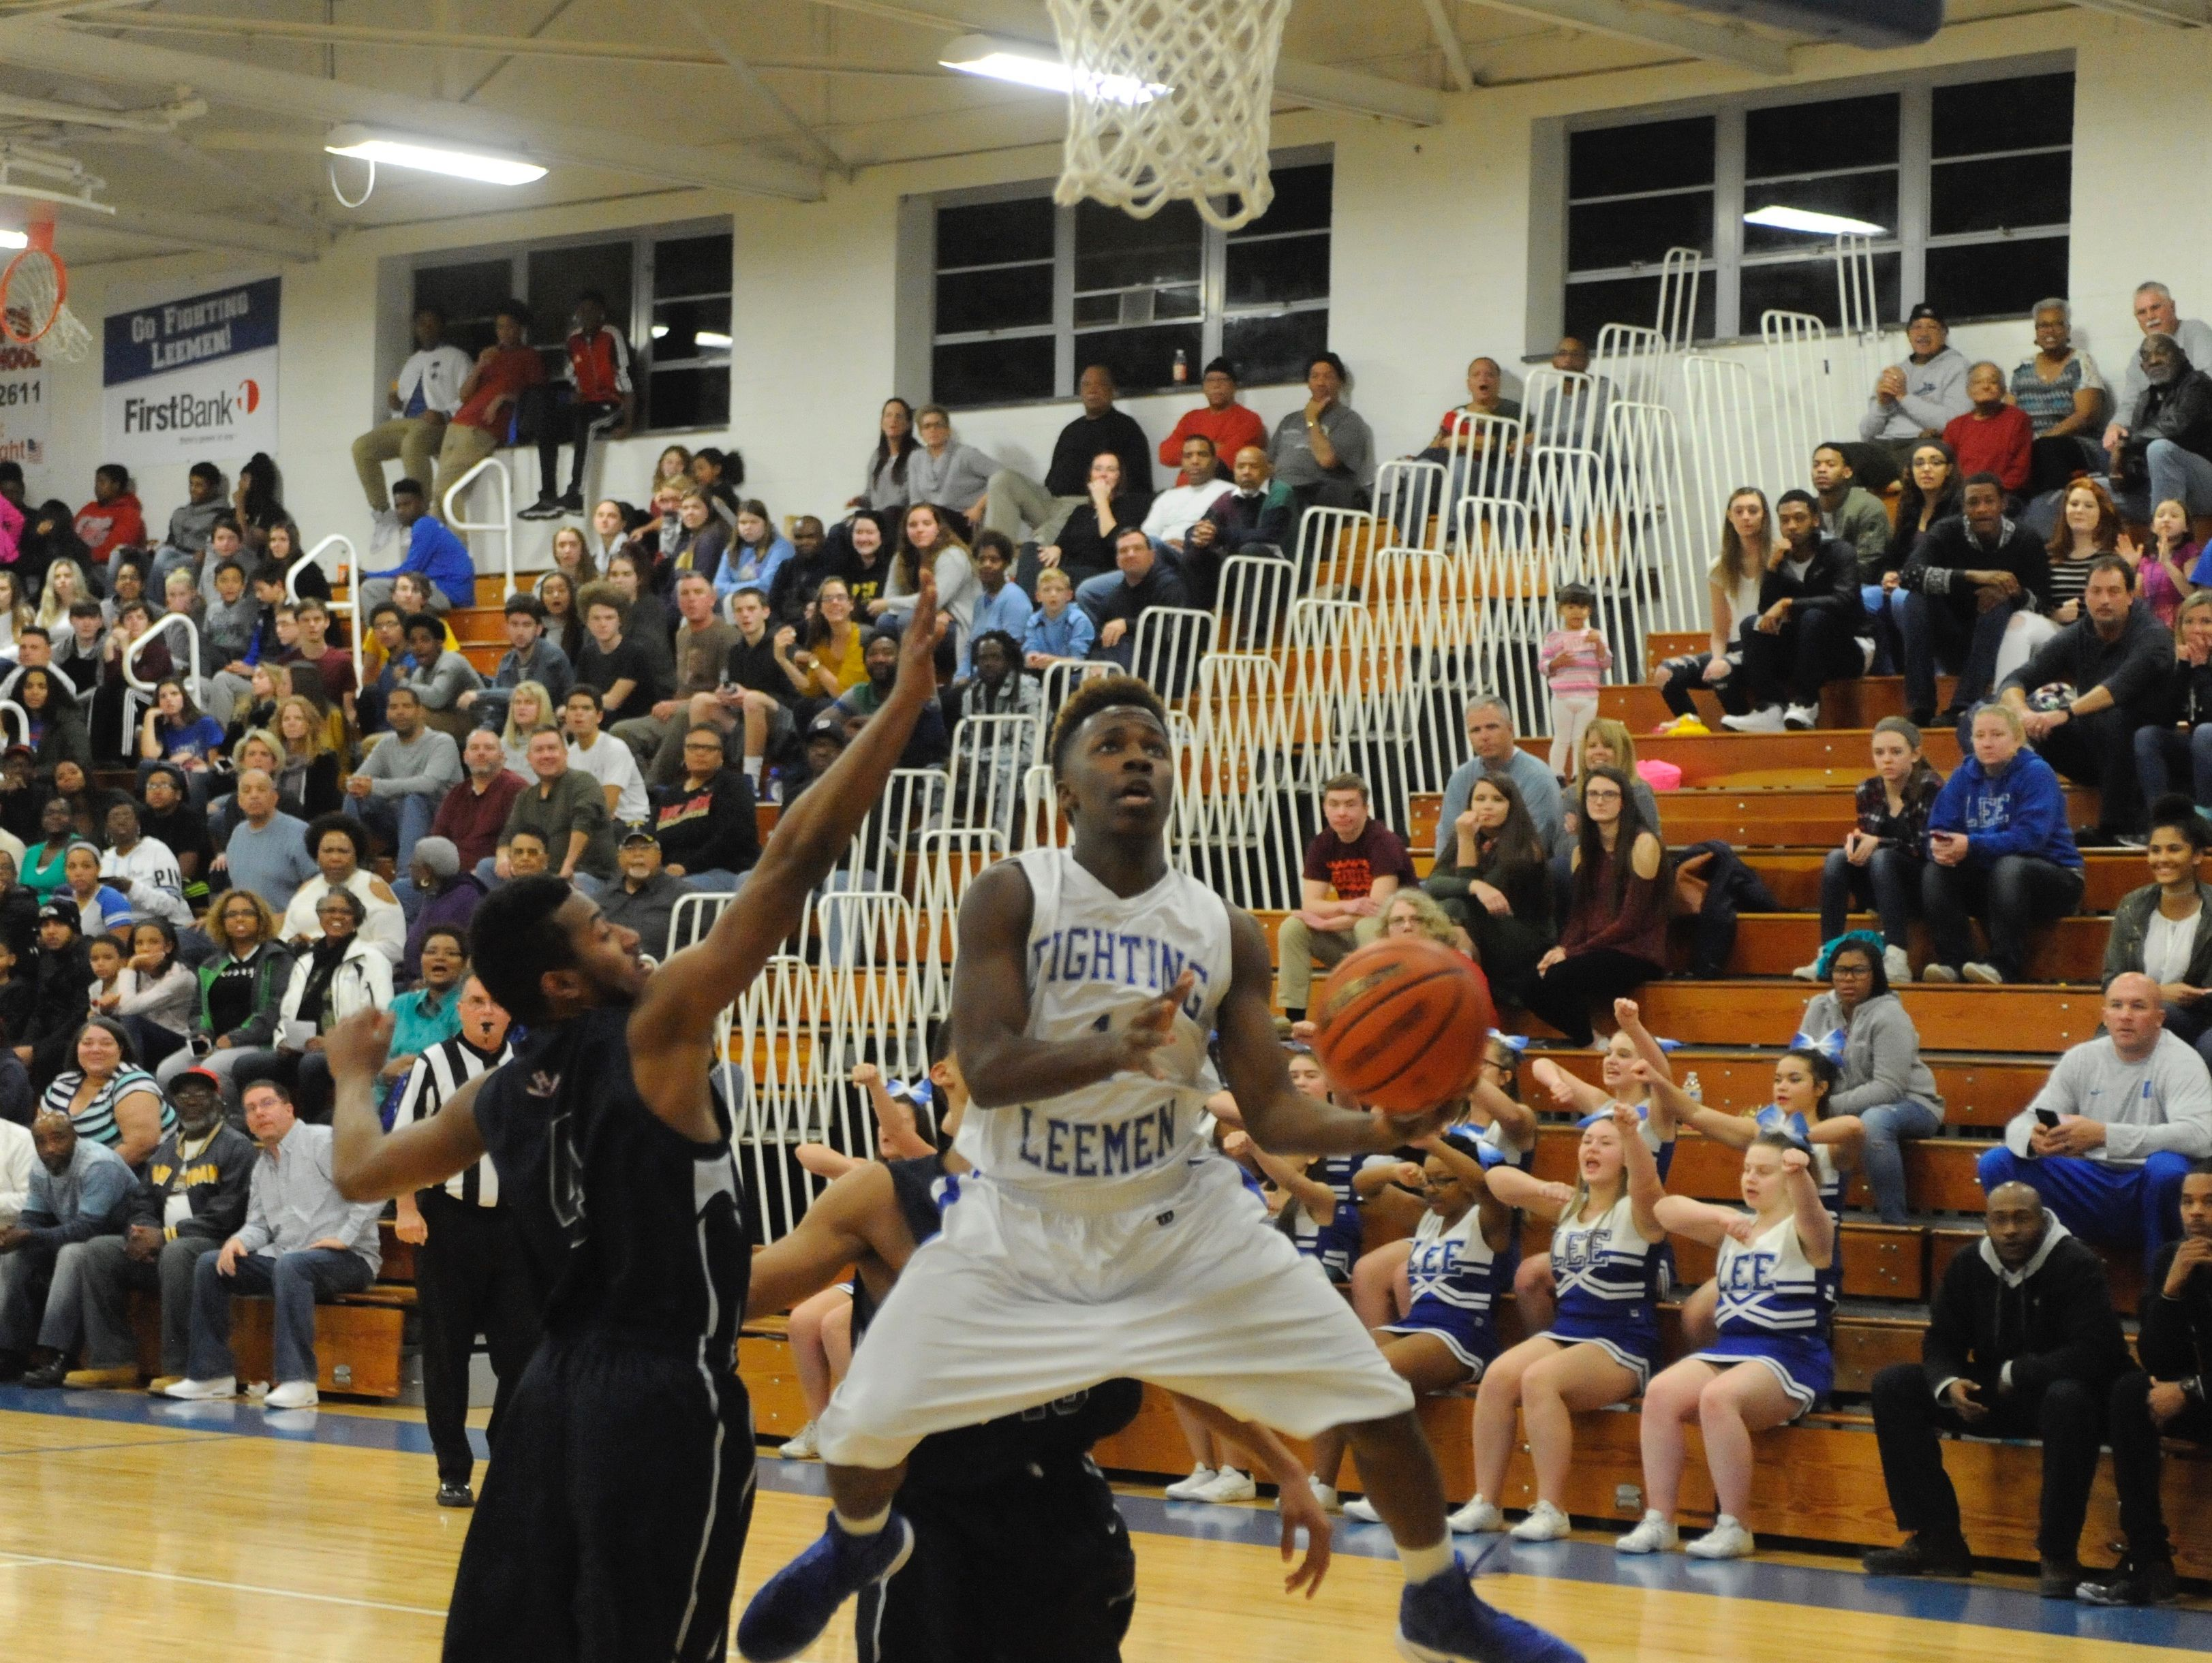 Lee High's Blaize Velvin attempts a shot during Friday night's game against Harrisonburg at Paul Hatcher Gym.